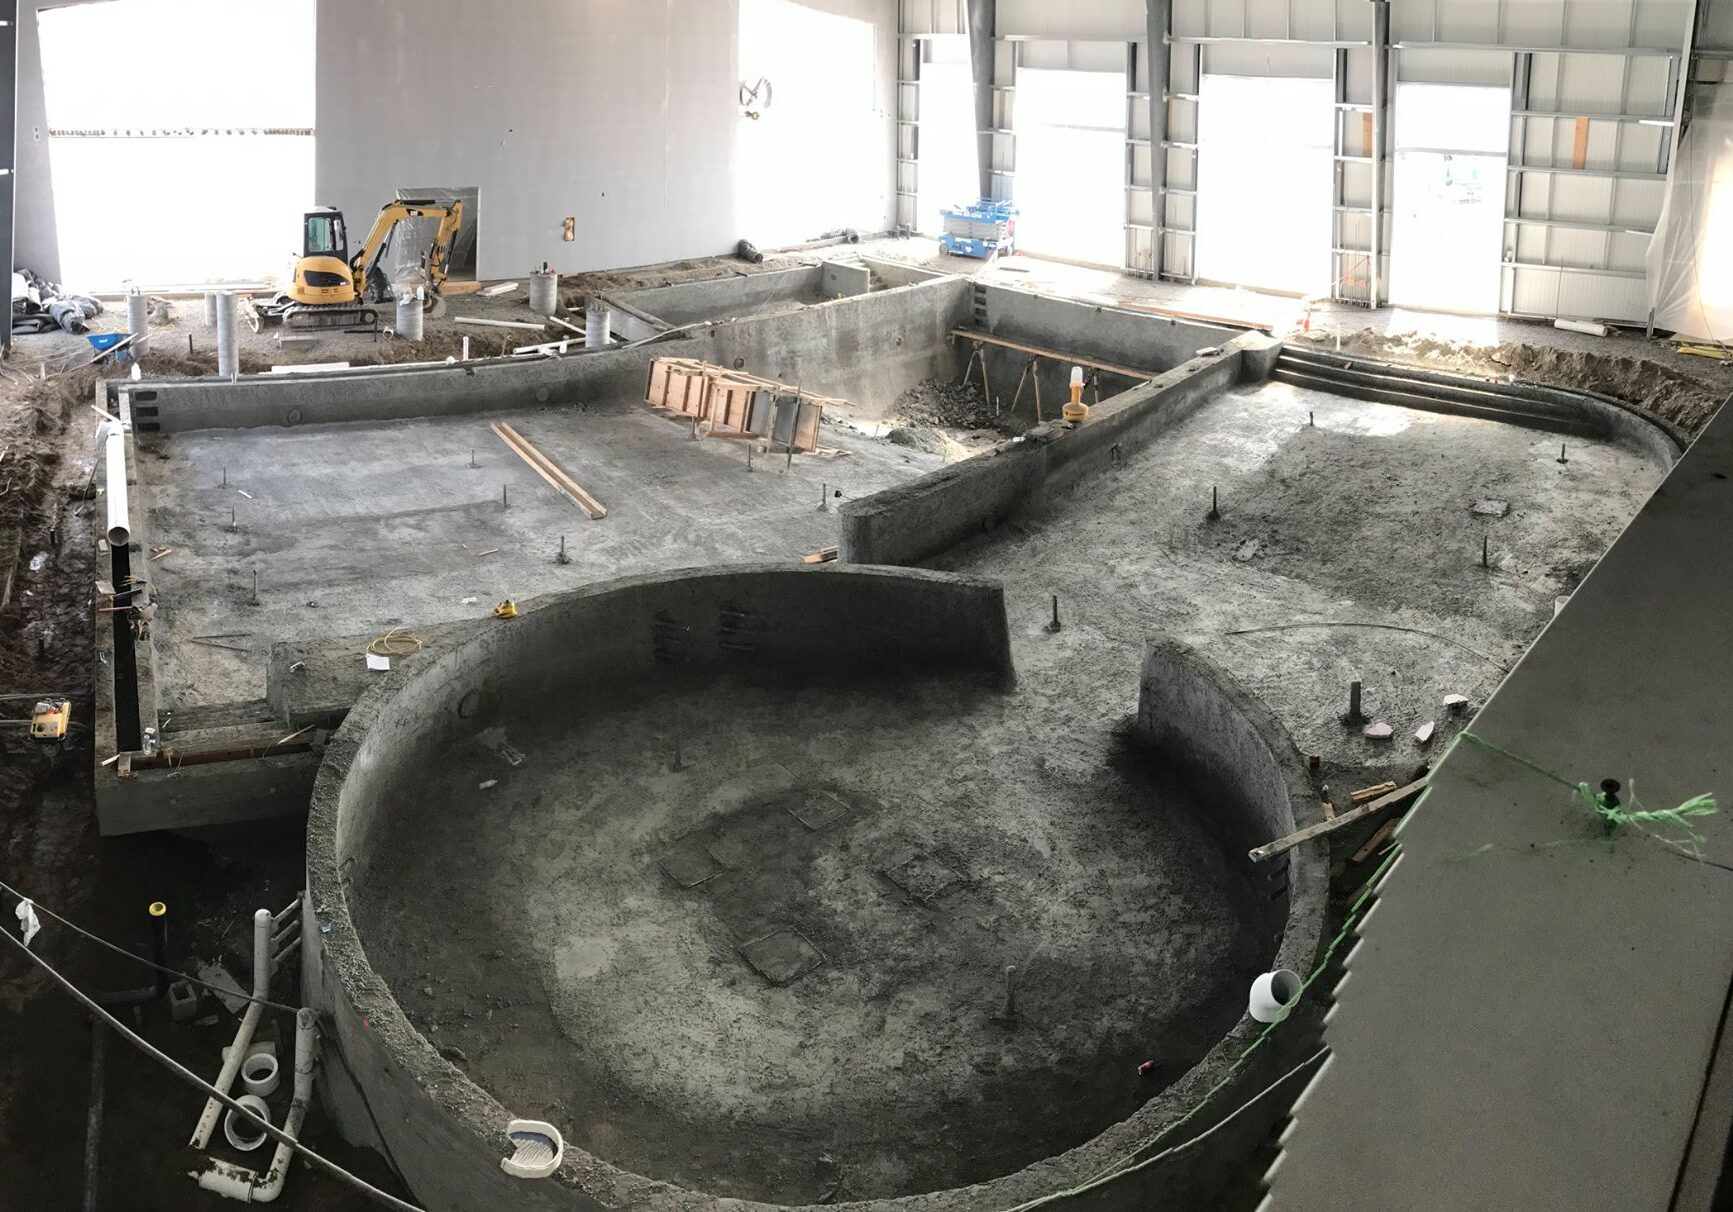 Pool Construction, pouring concrete to form the vortex and other pools.